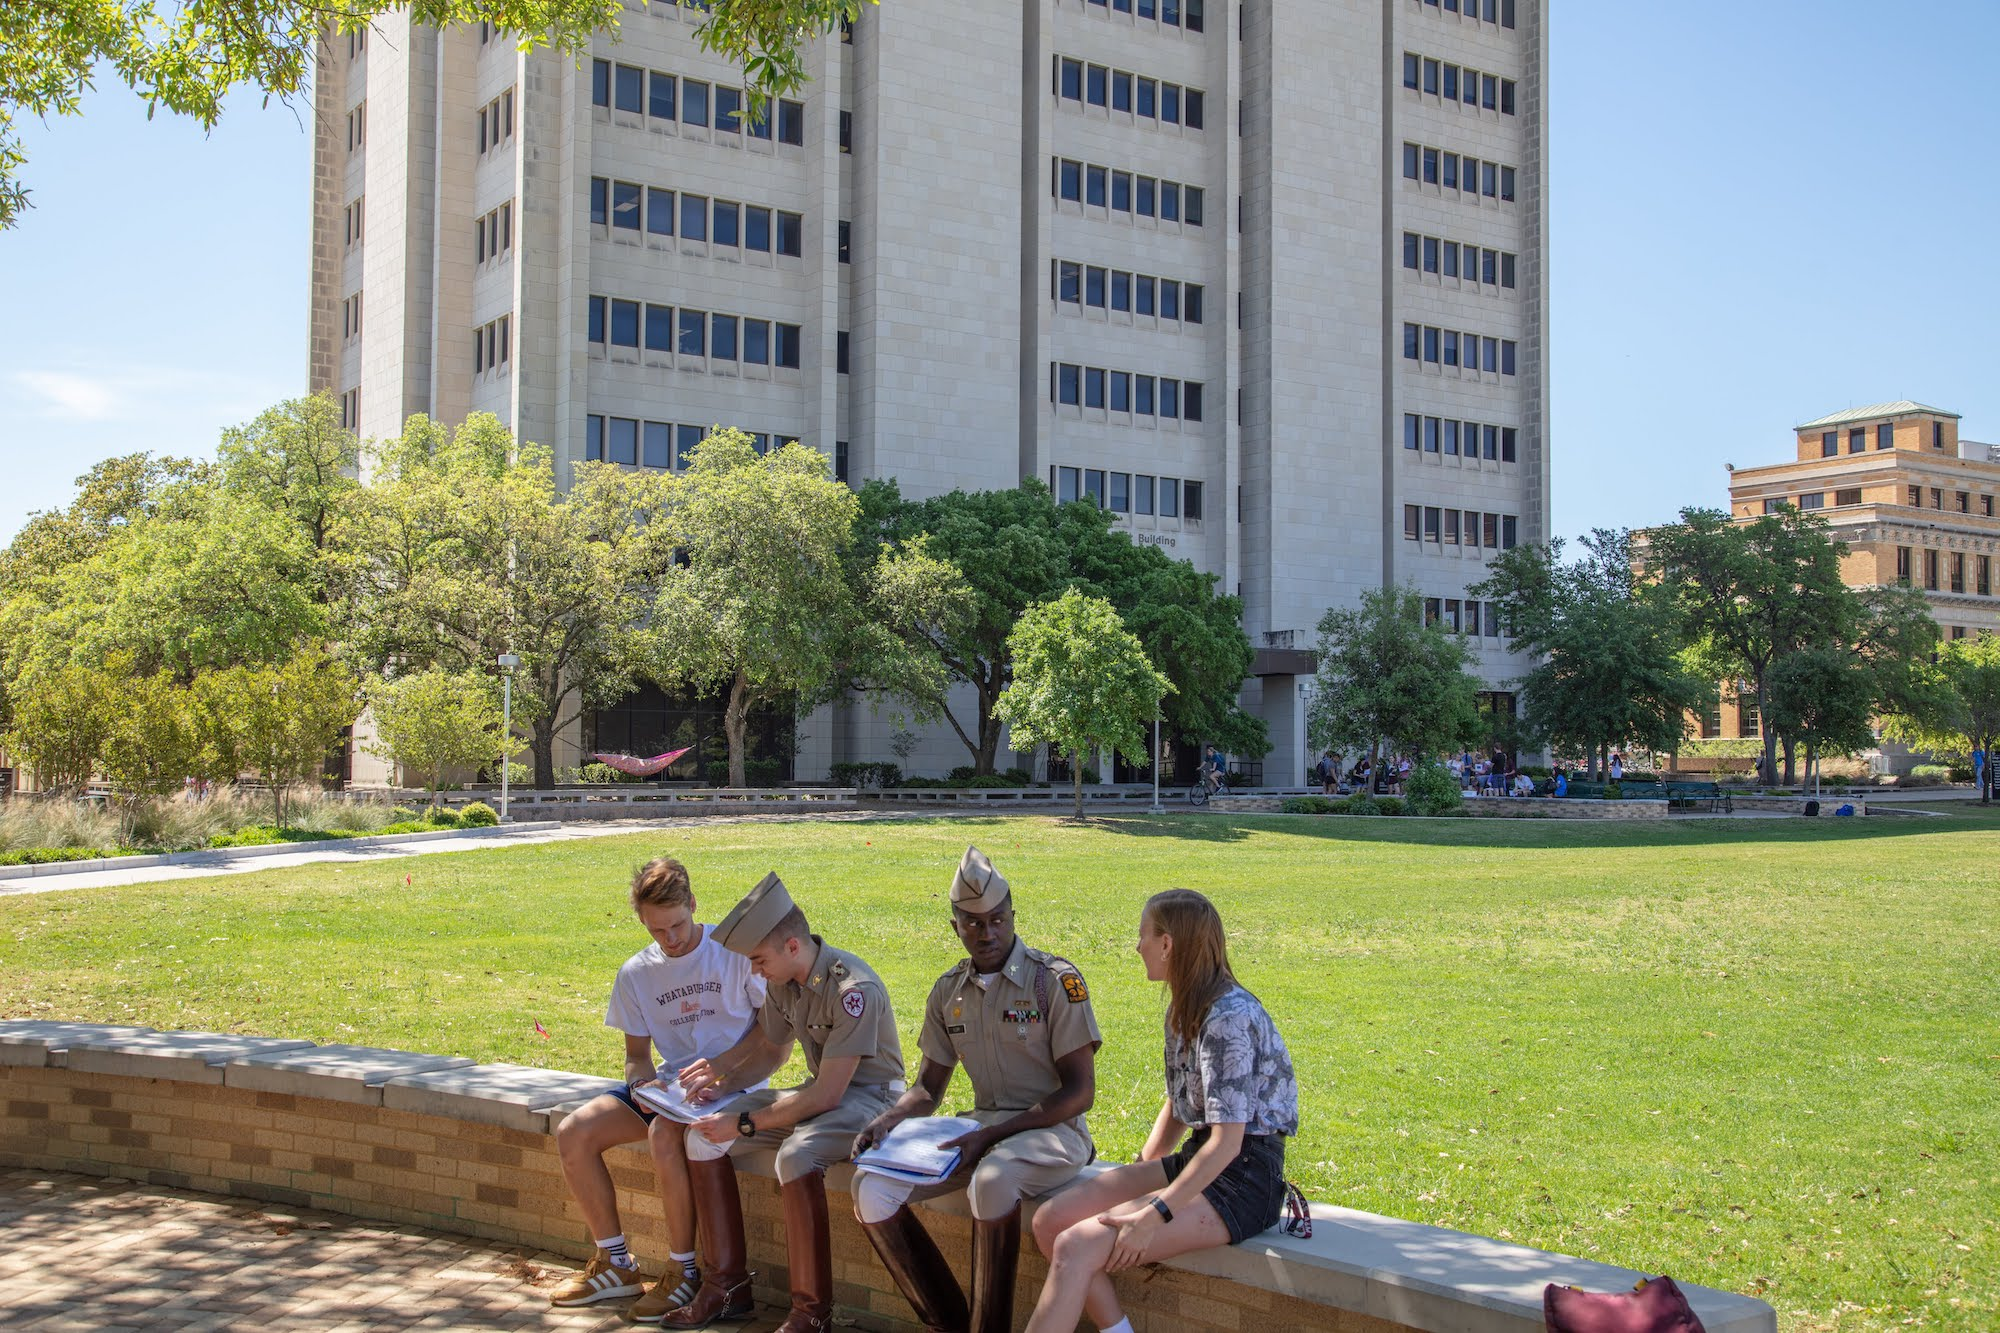 students studying on bench in front of O&M building